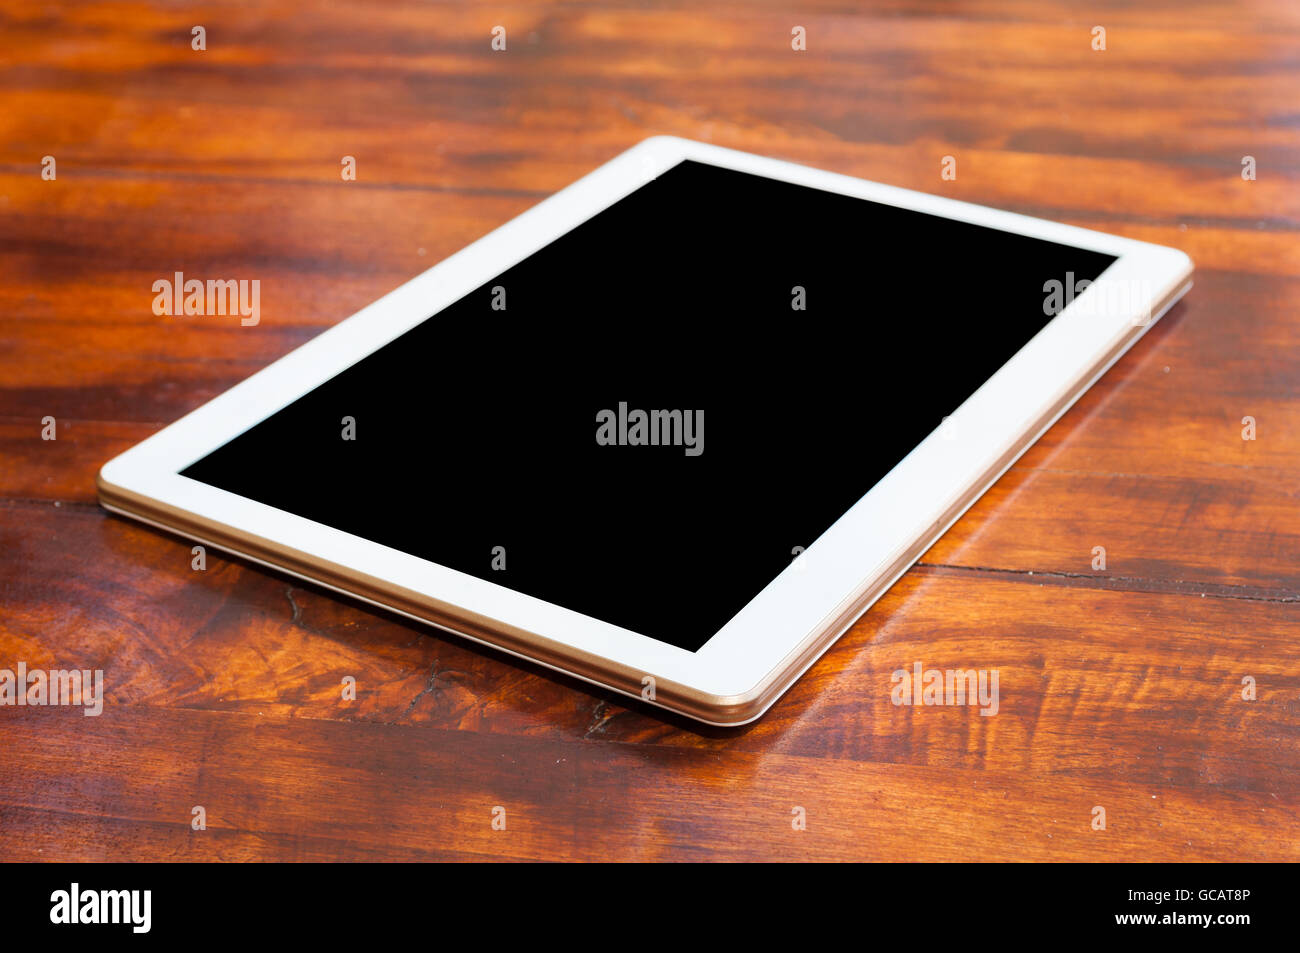 Tablet gadget on wooden terrace table with black screen with copy text space - Stock Image